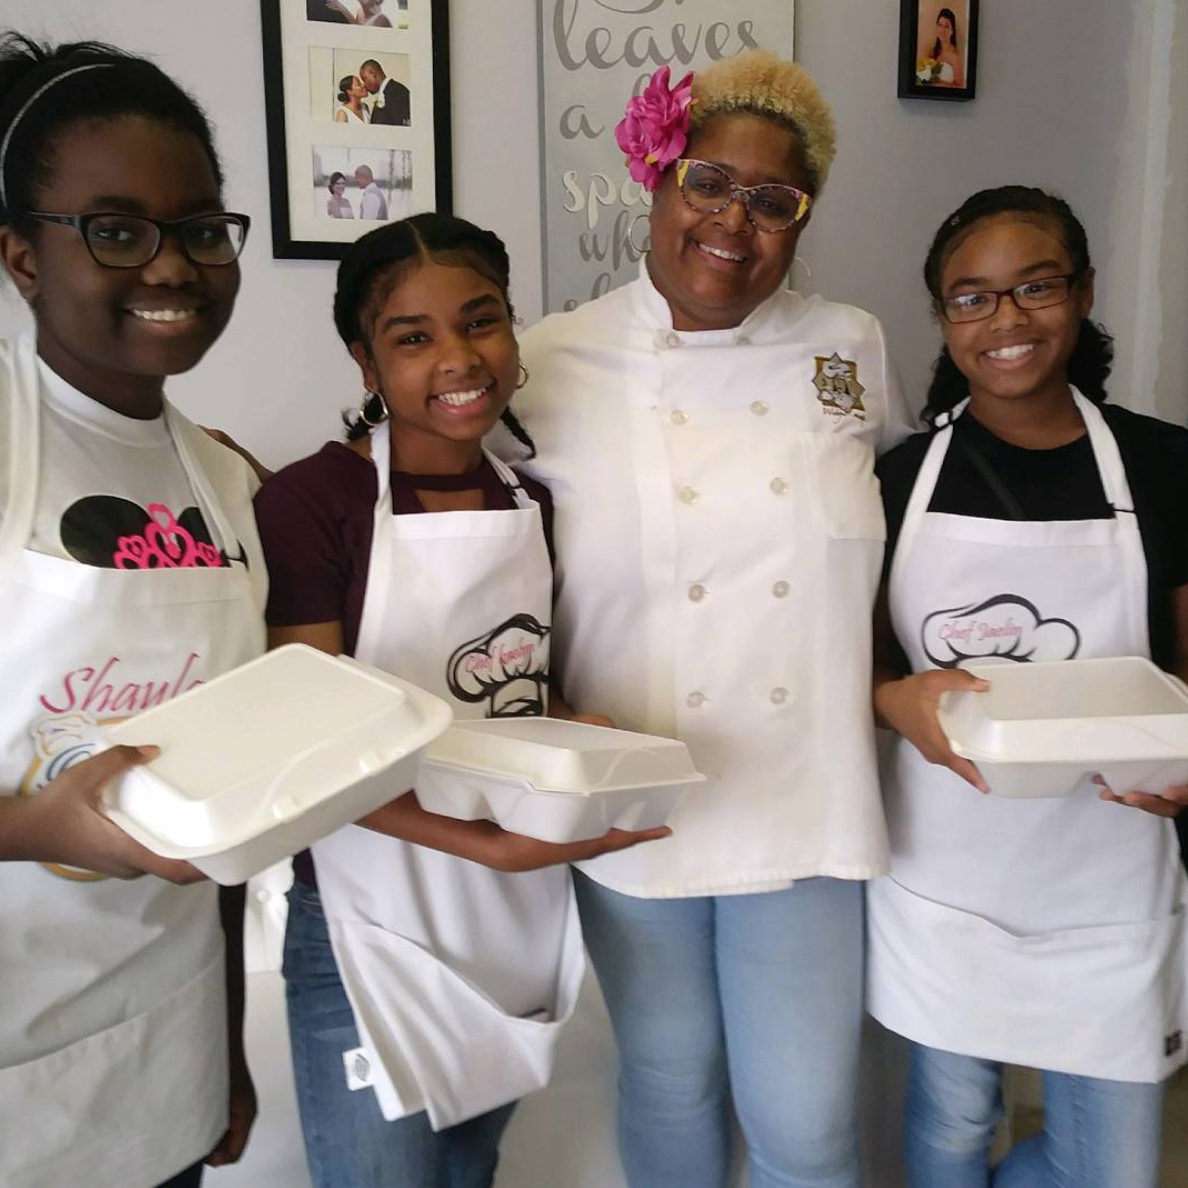 Chef Samone Hosts Cooking Class With Girls